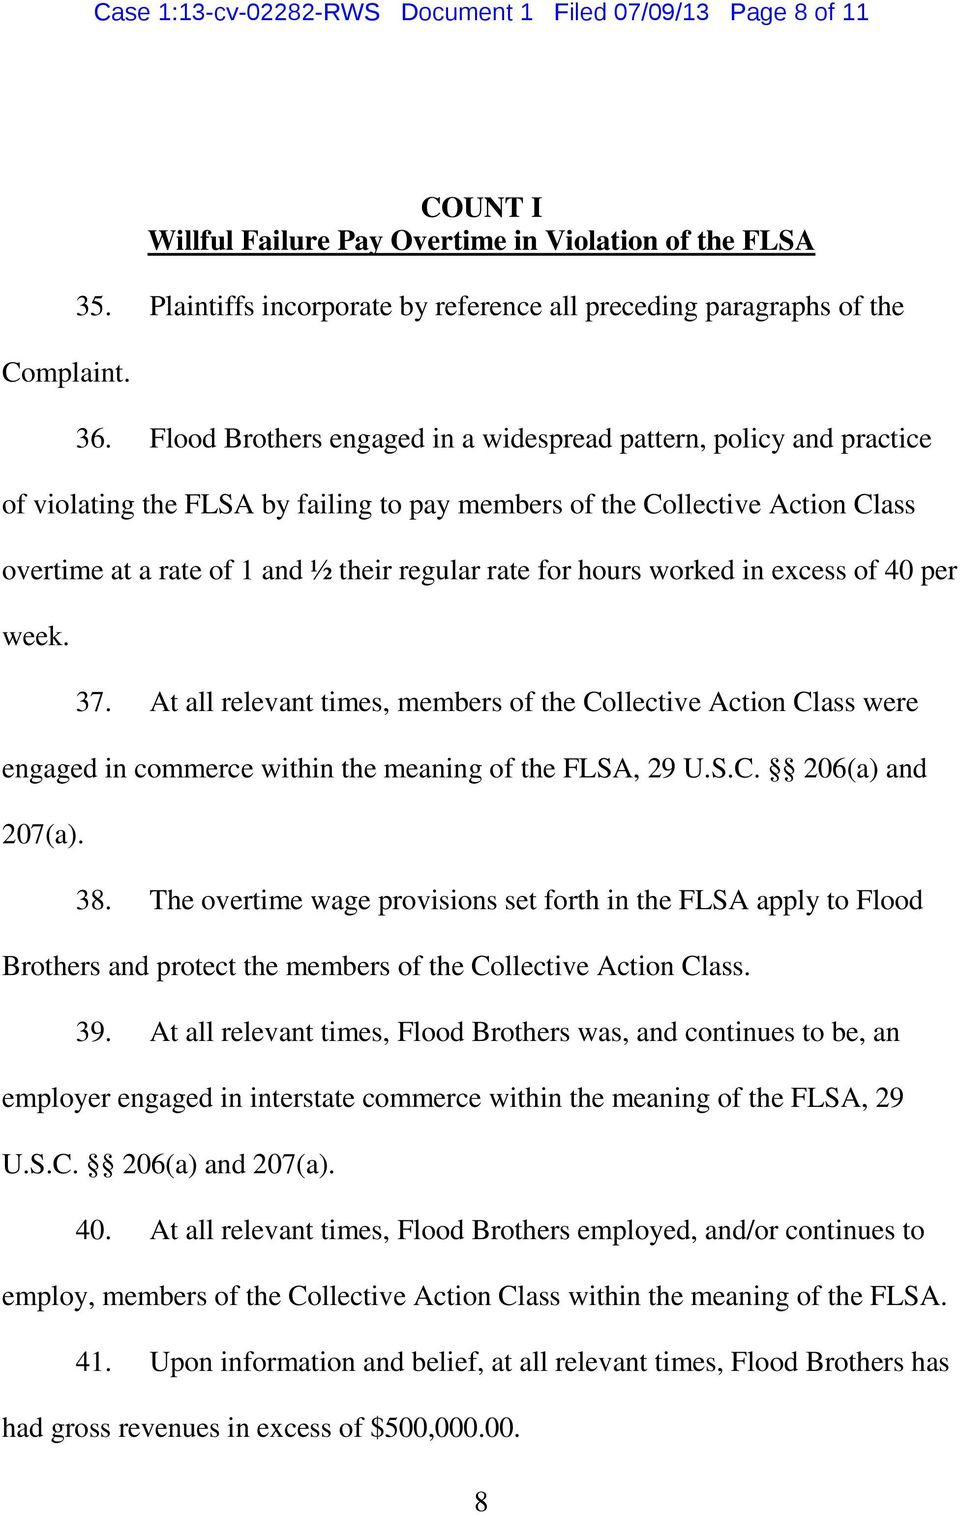 Flood Brothers engaged in a widespread pattern, policy and practice of violating the FLSA by failing to pay members of the Collective Action Class overtime at a rate of 1 and ½ their regular rate for